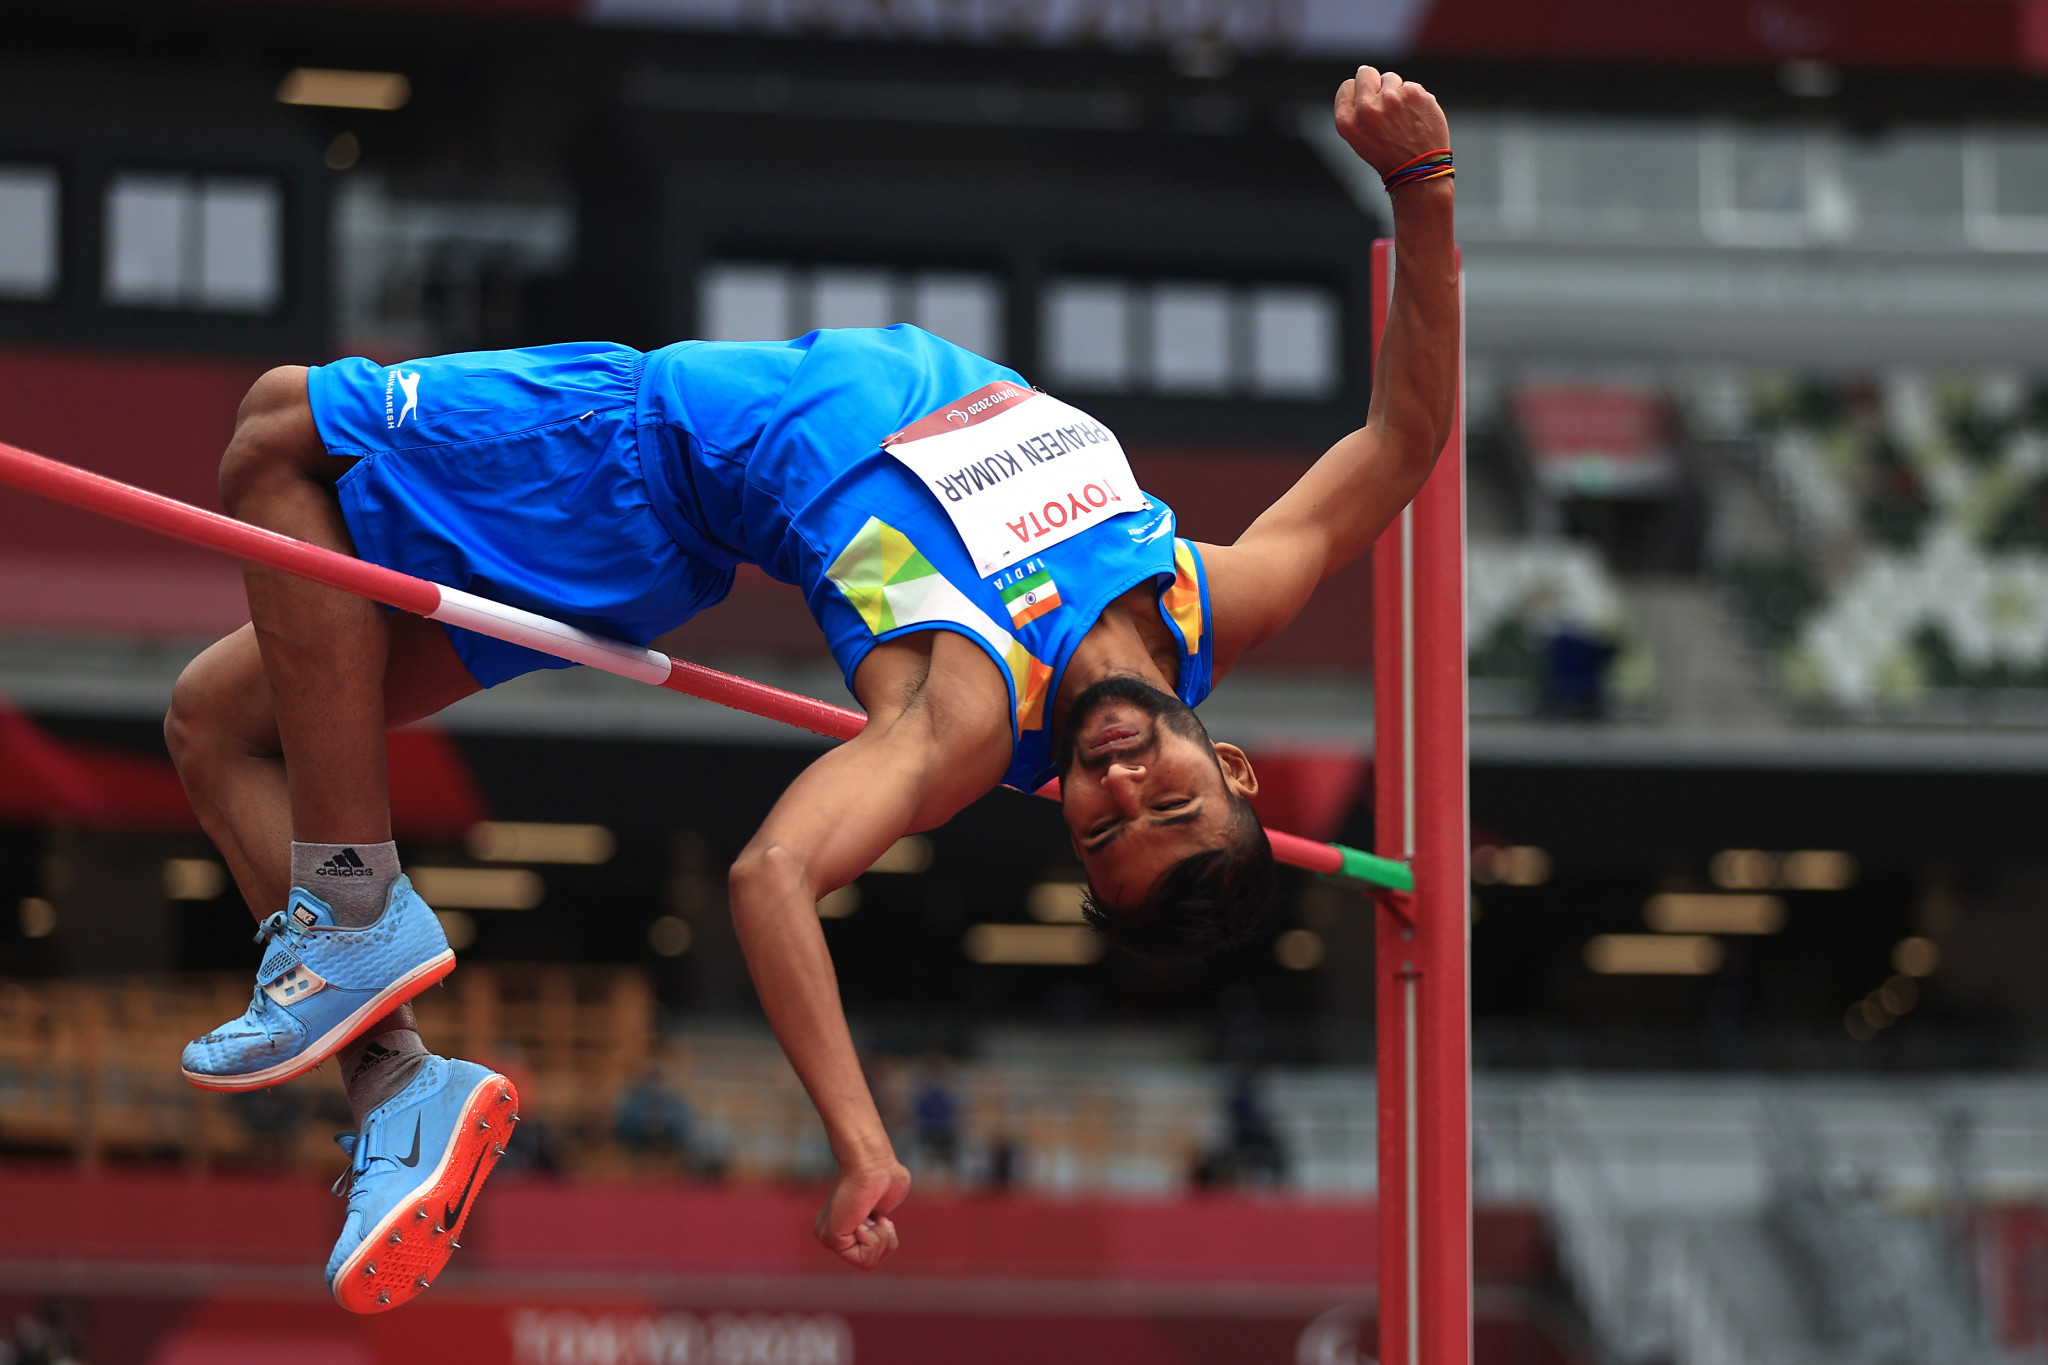 Praveen Kumar won silver in the men's T64 high jump event at Tokyo 2020 ©Getty Images